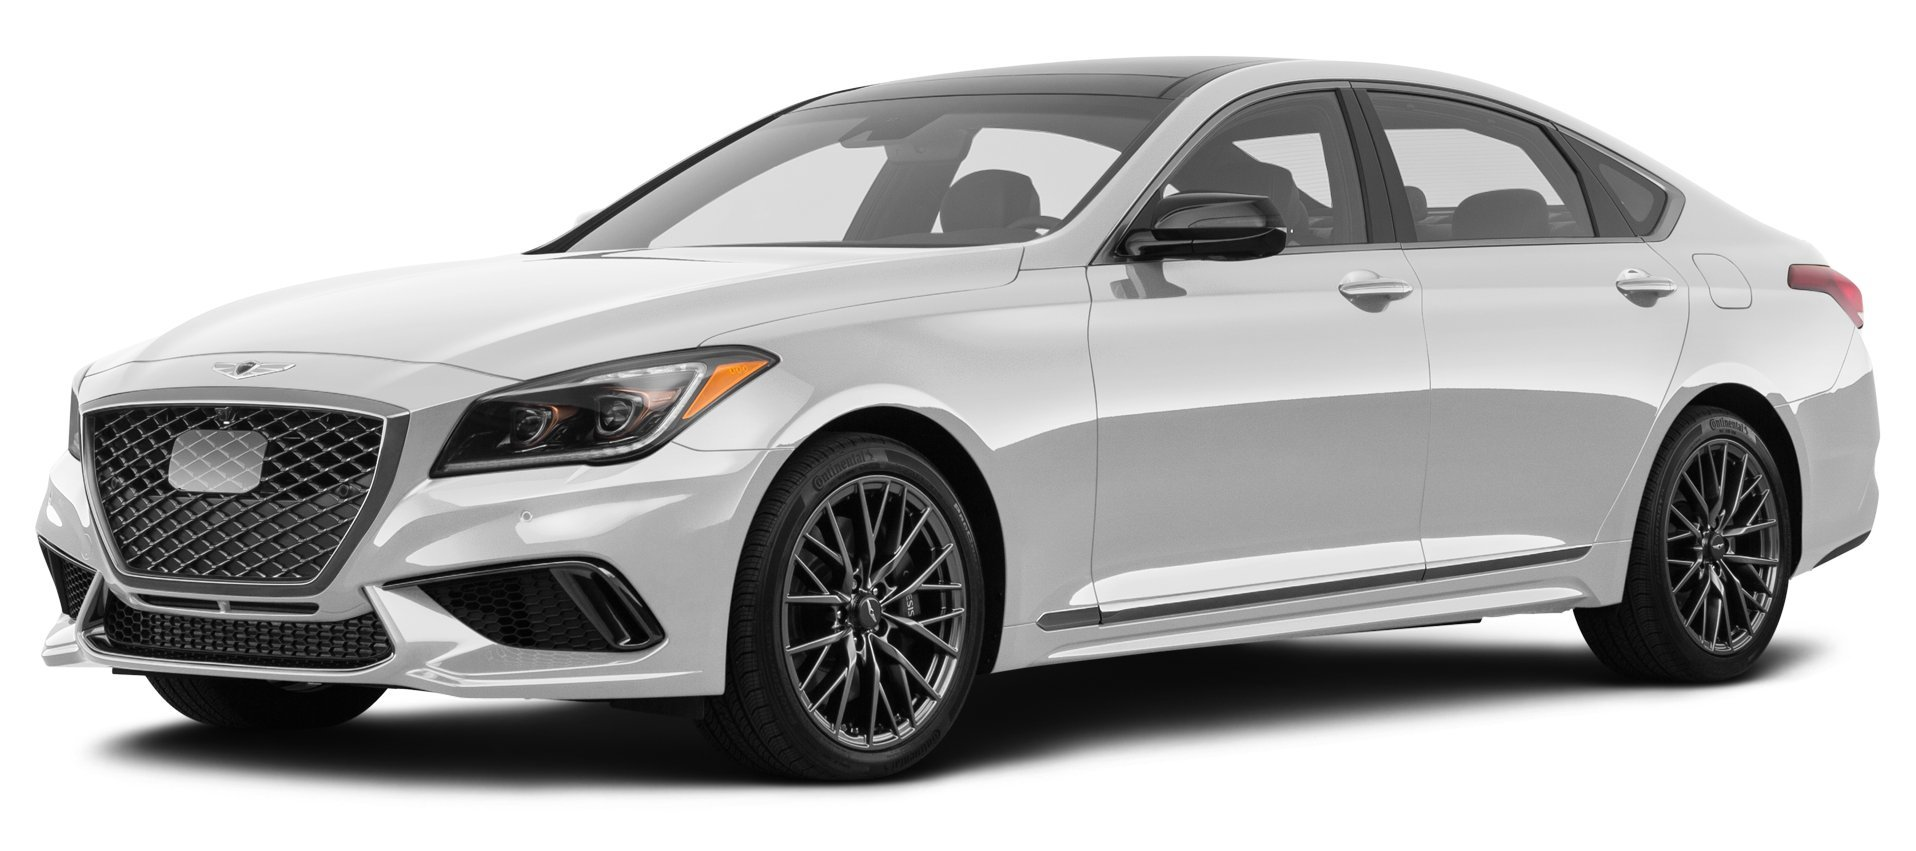 Amazon 2018 Genesis G80 Reviews and Specs Vehicles